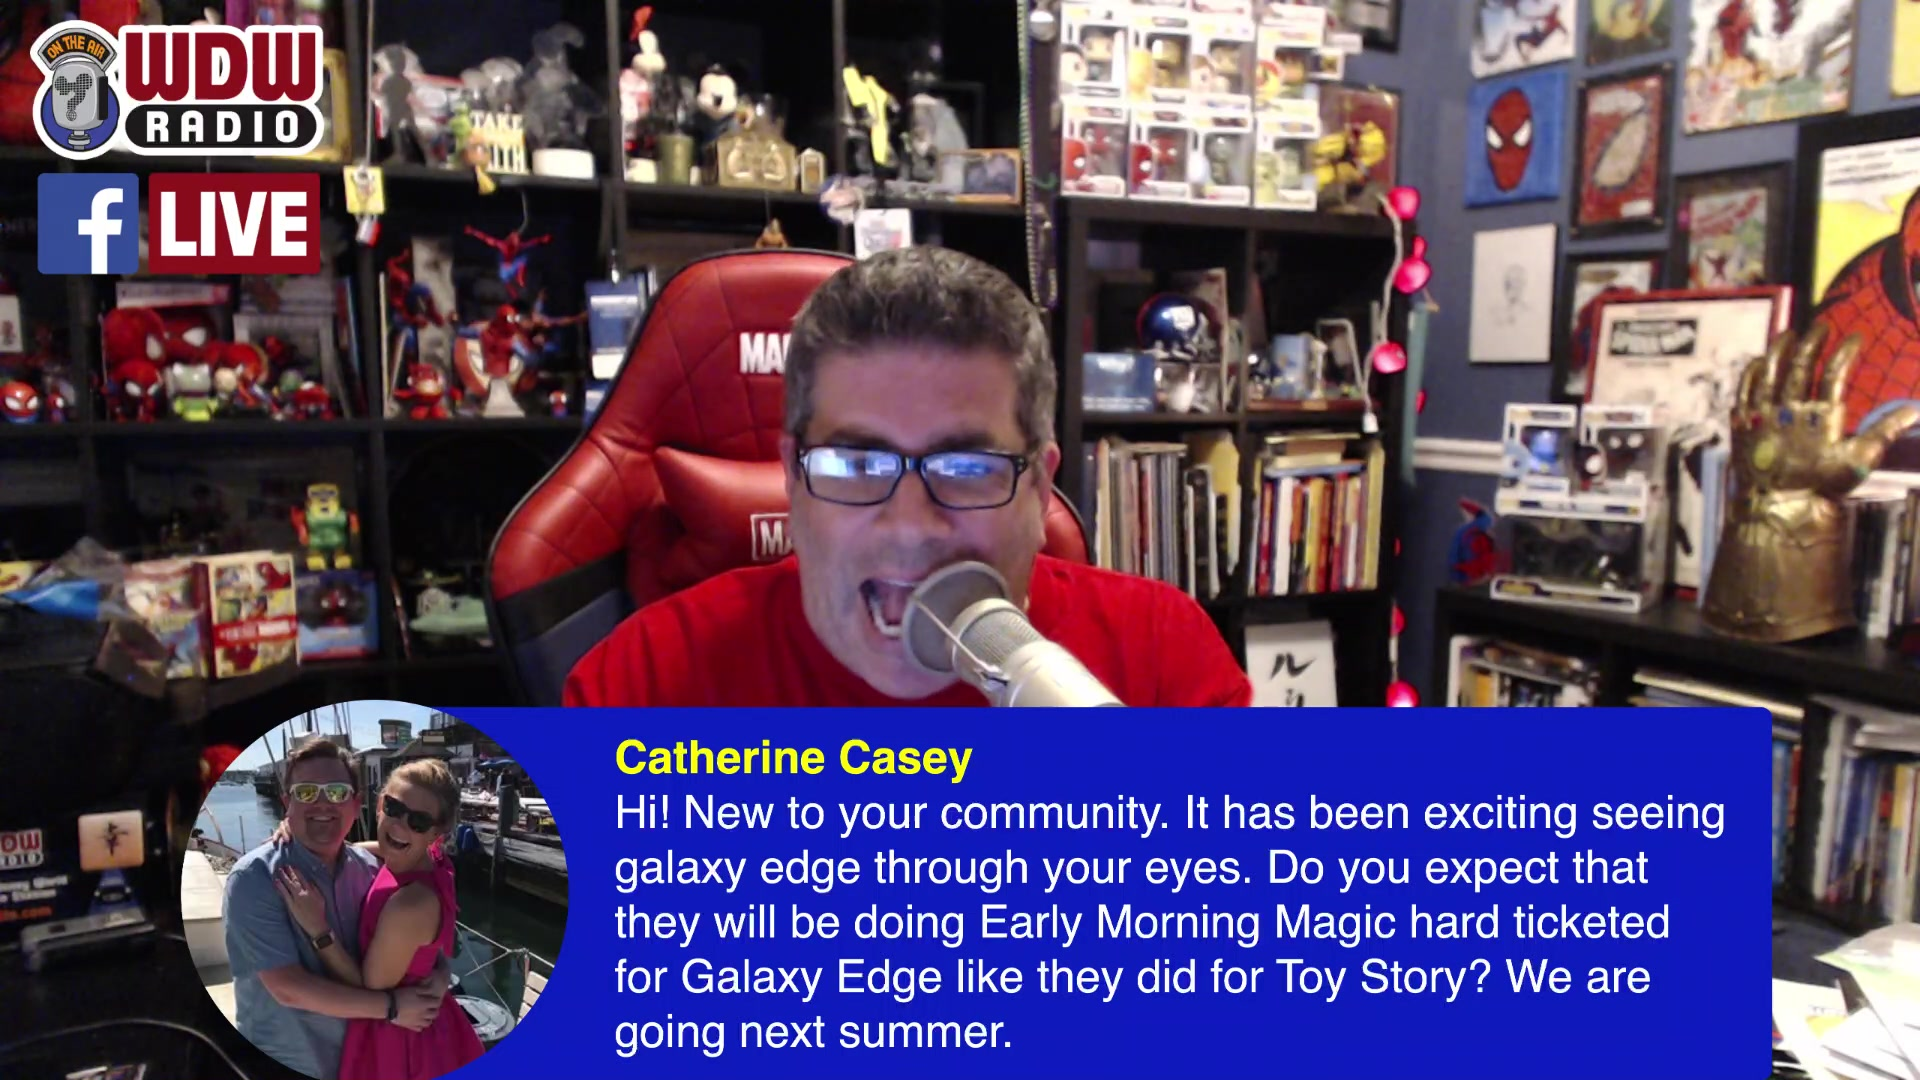 WDW Radio LIVE Q&A about D23 Expo, Galaxy's Edge, Disney, Marvel, Star Wars and more!